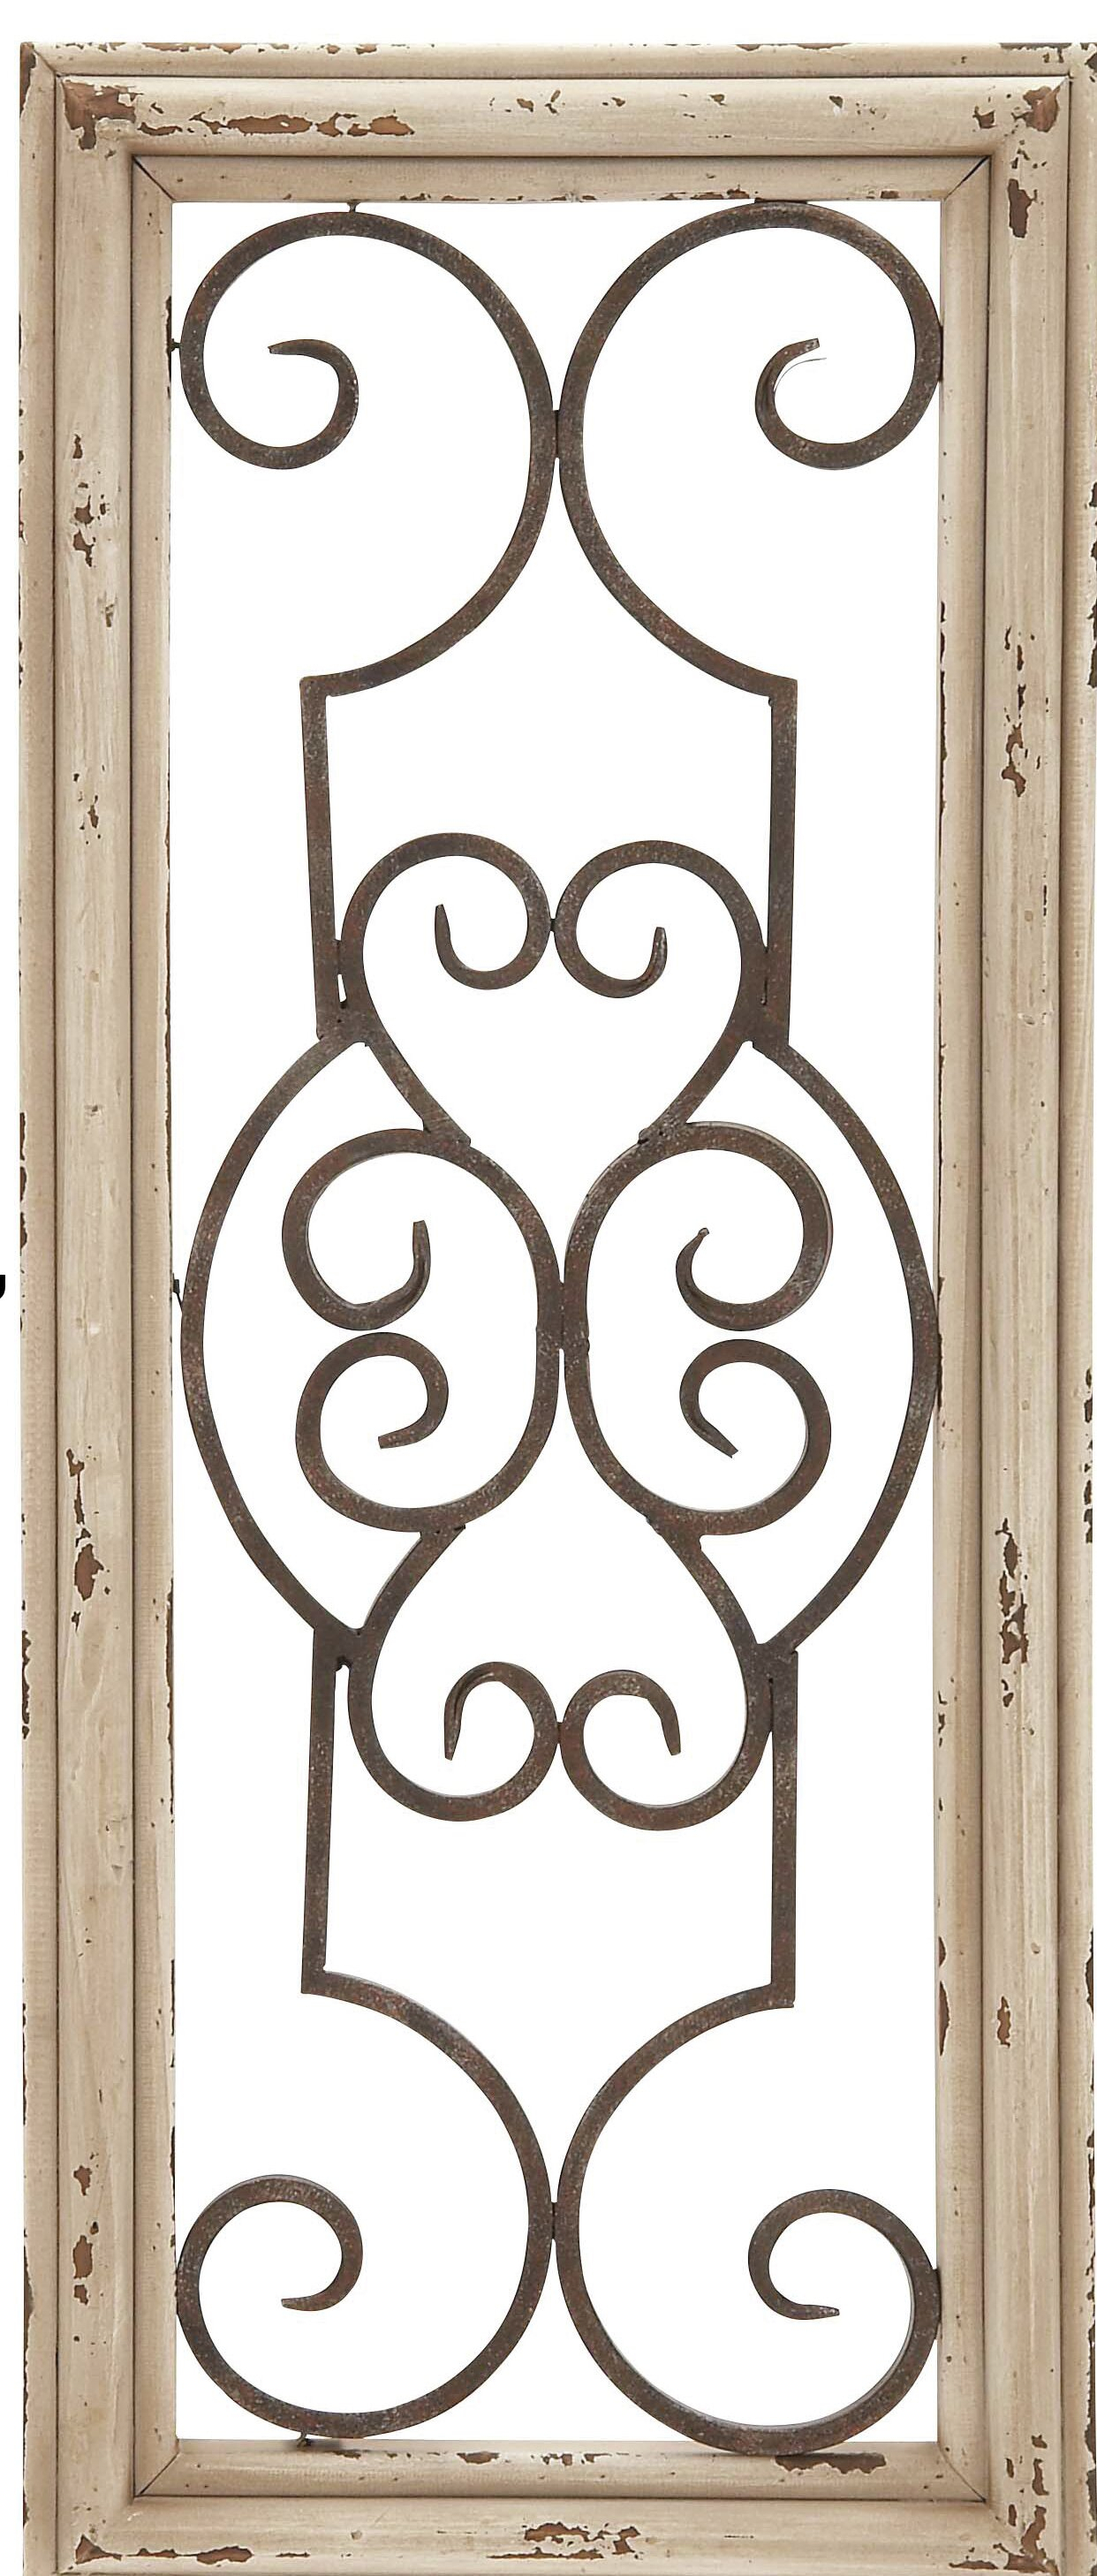 1 Piece Ortie Panel Wall Décor In 1 Piece Ortie Panel Wall Decor (View 2 of 30)